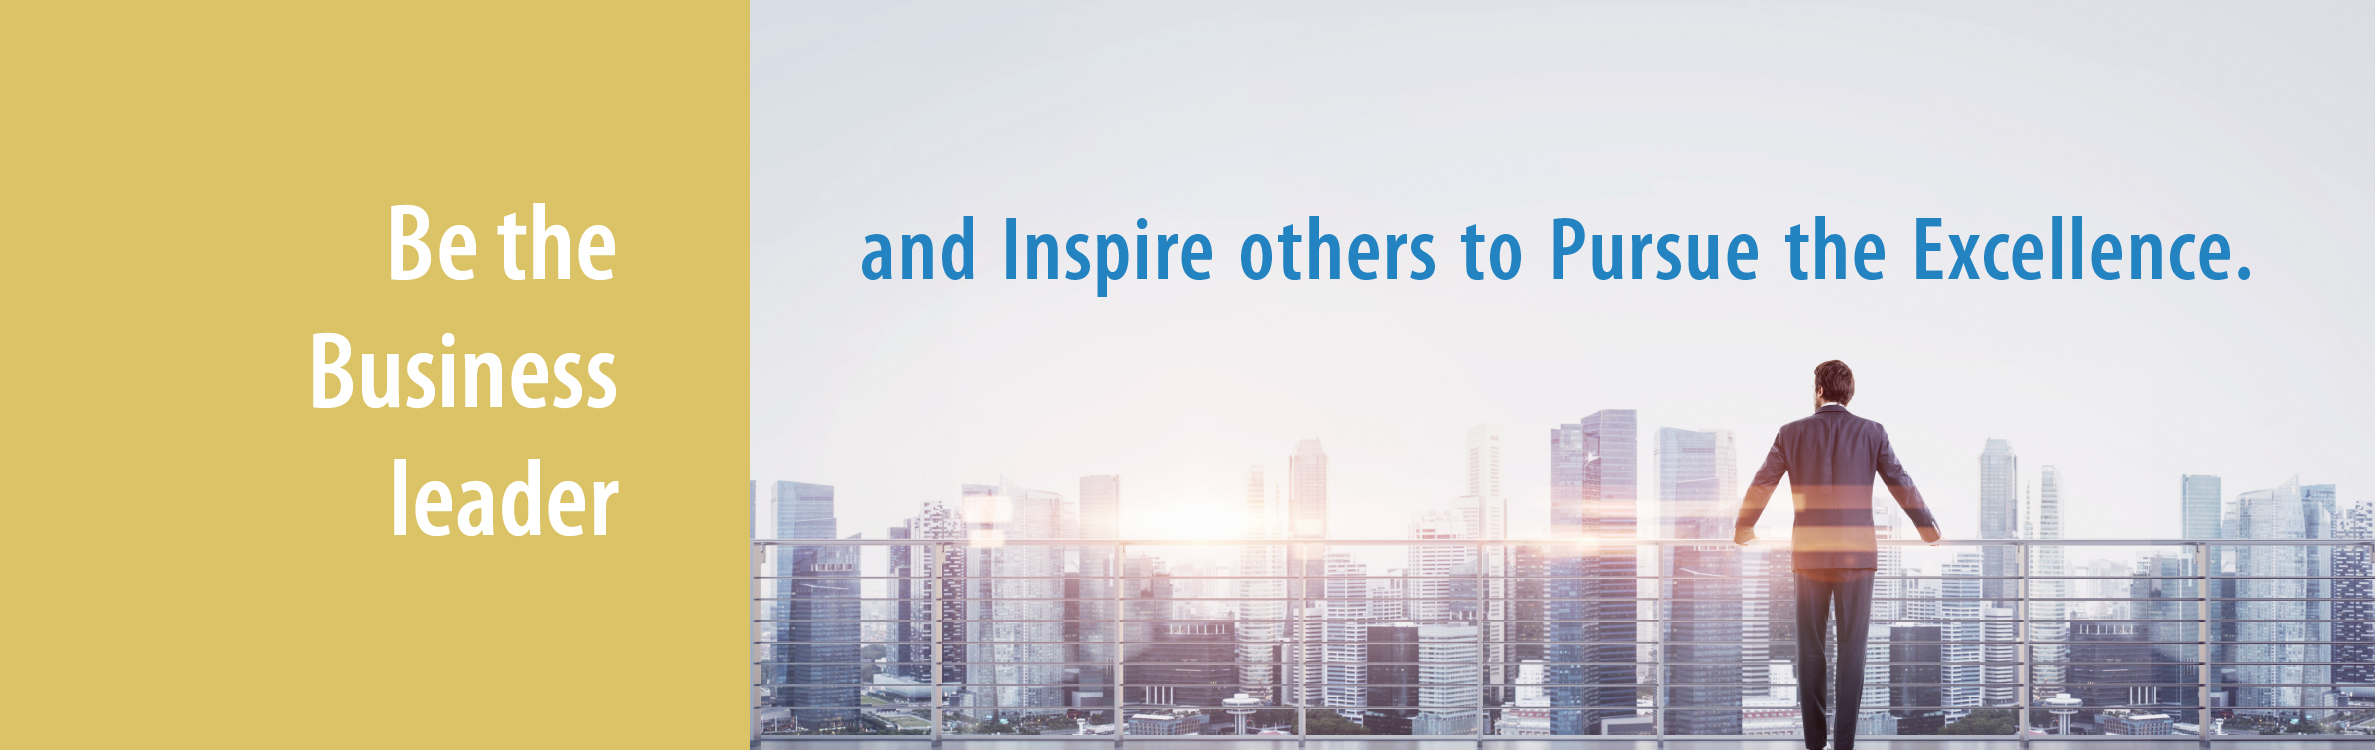 Banner 4_Be the business leader